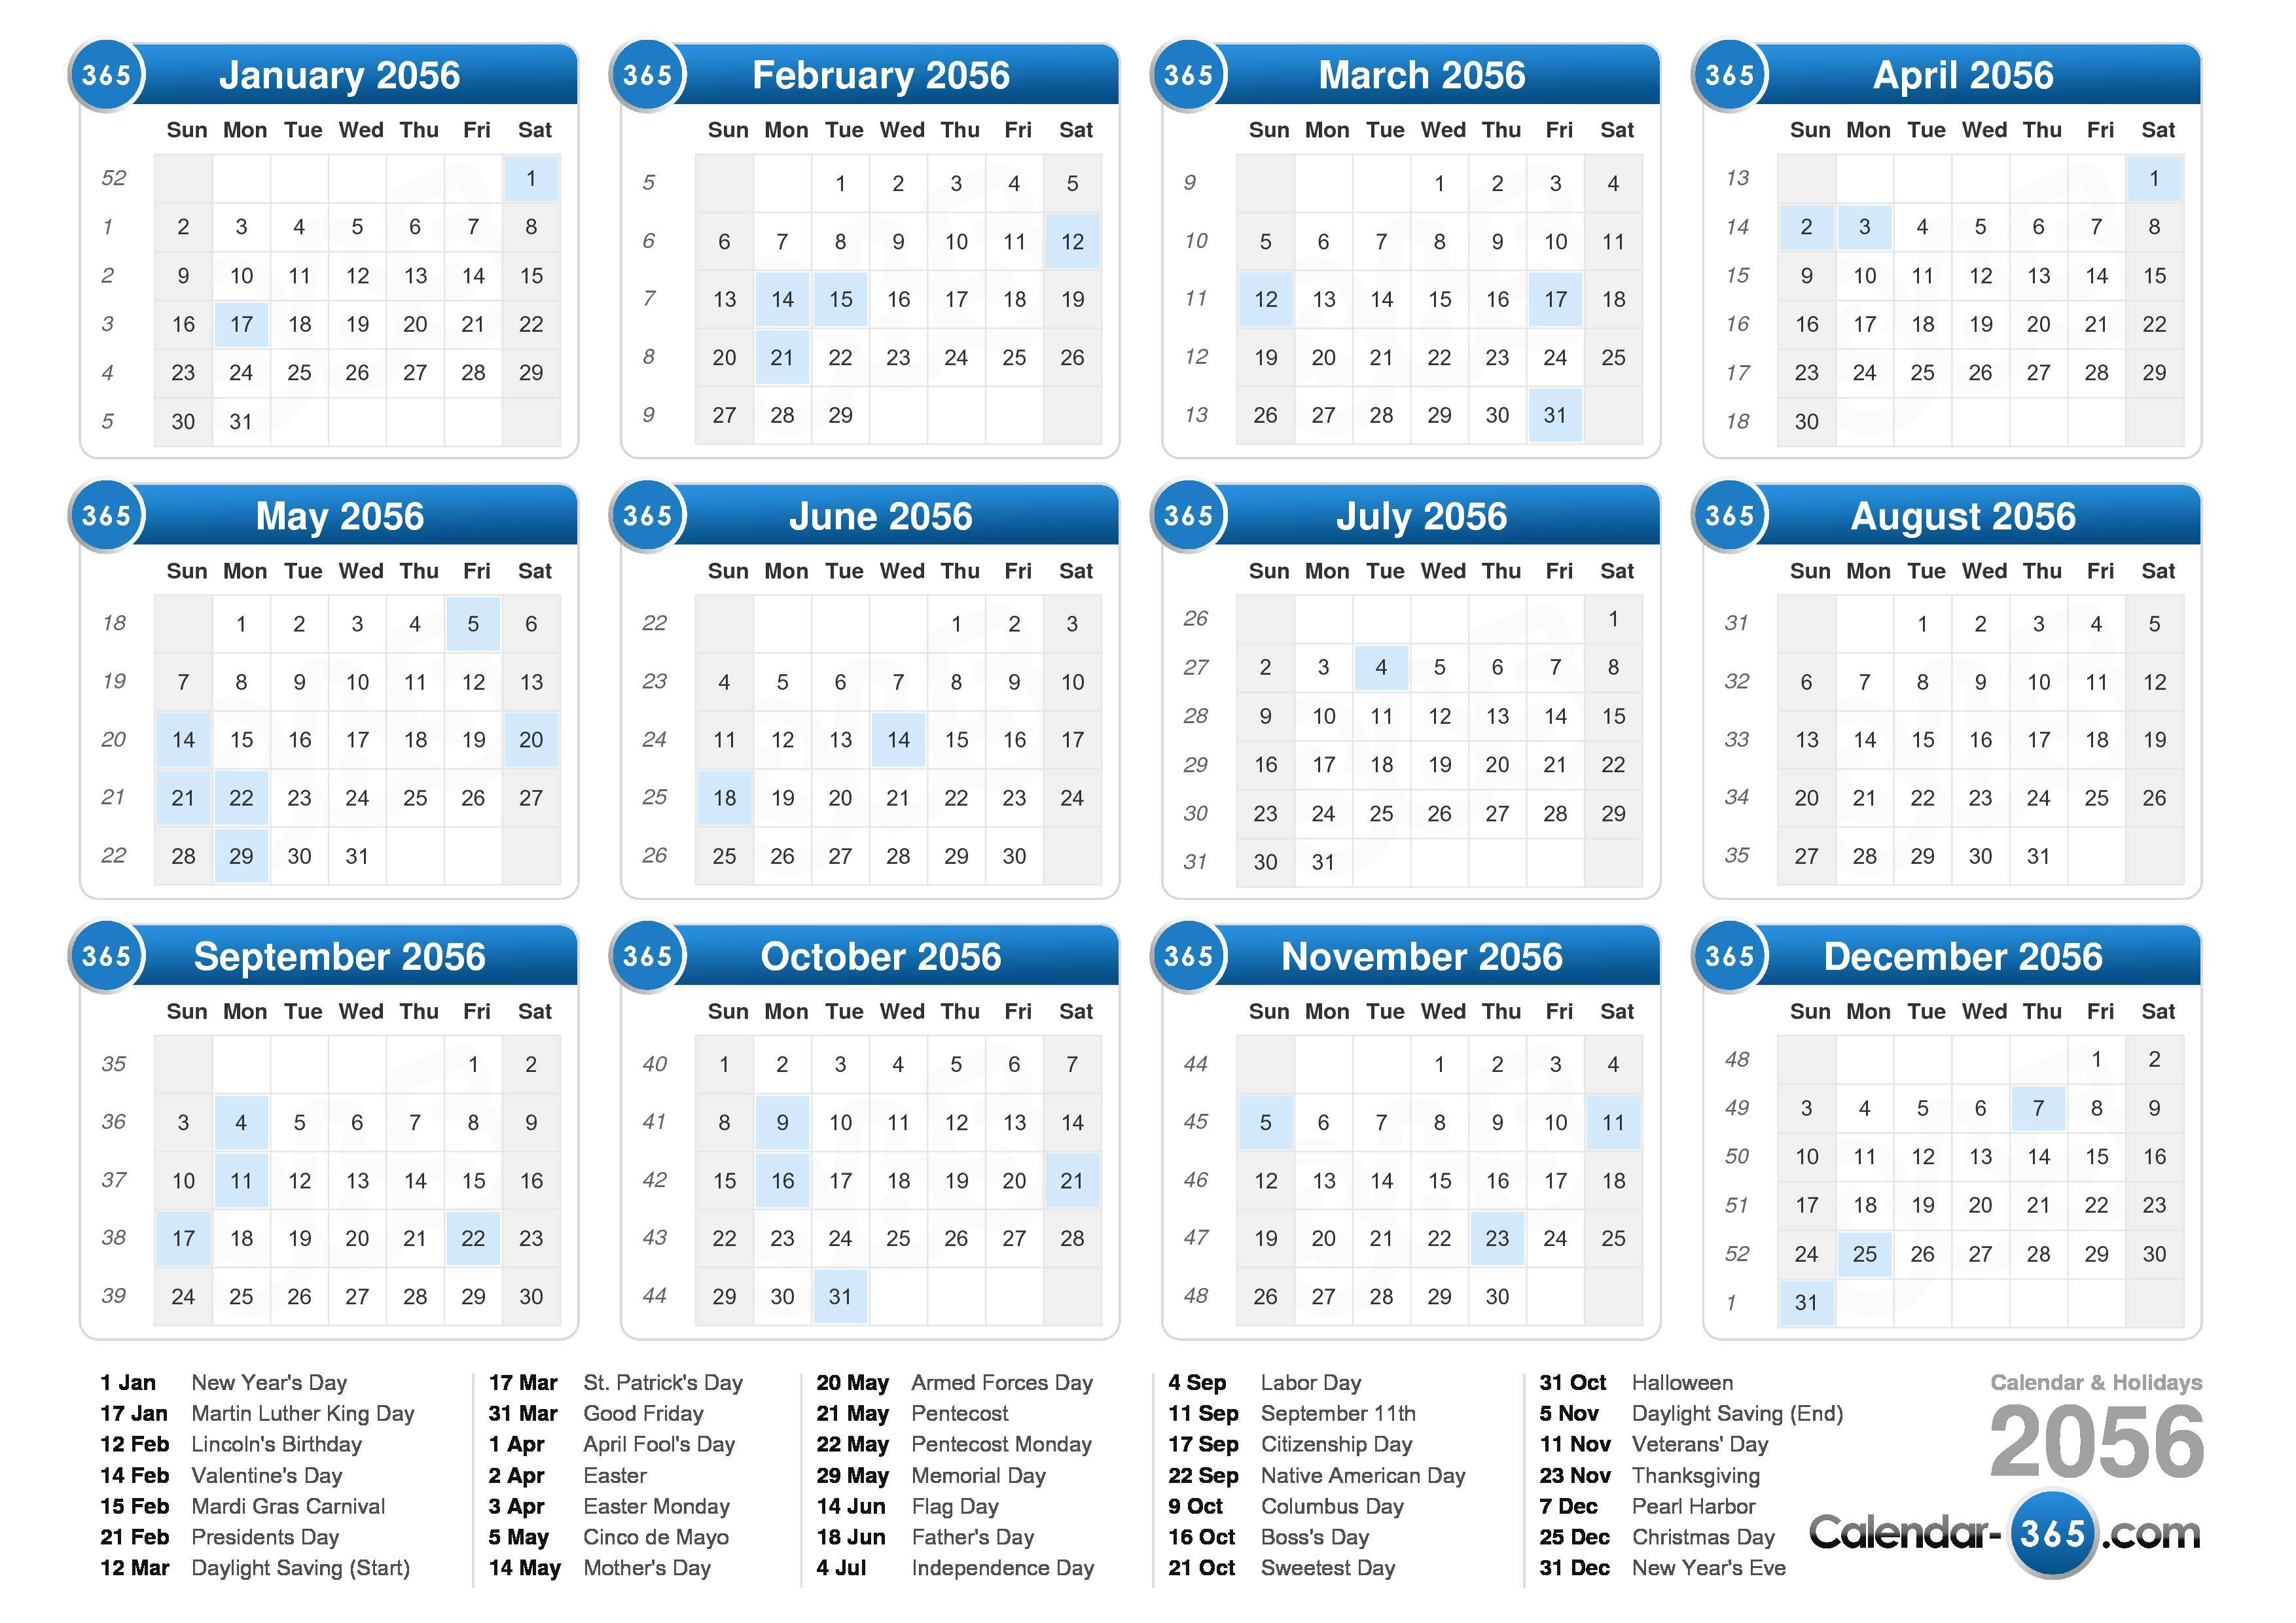 ... calendar with holidays landscape format 1 page 2056 calendar 250 740